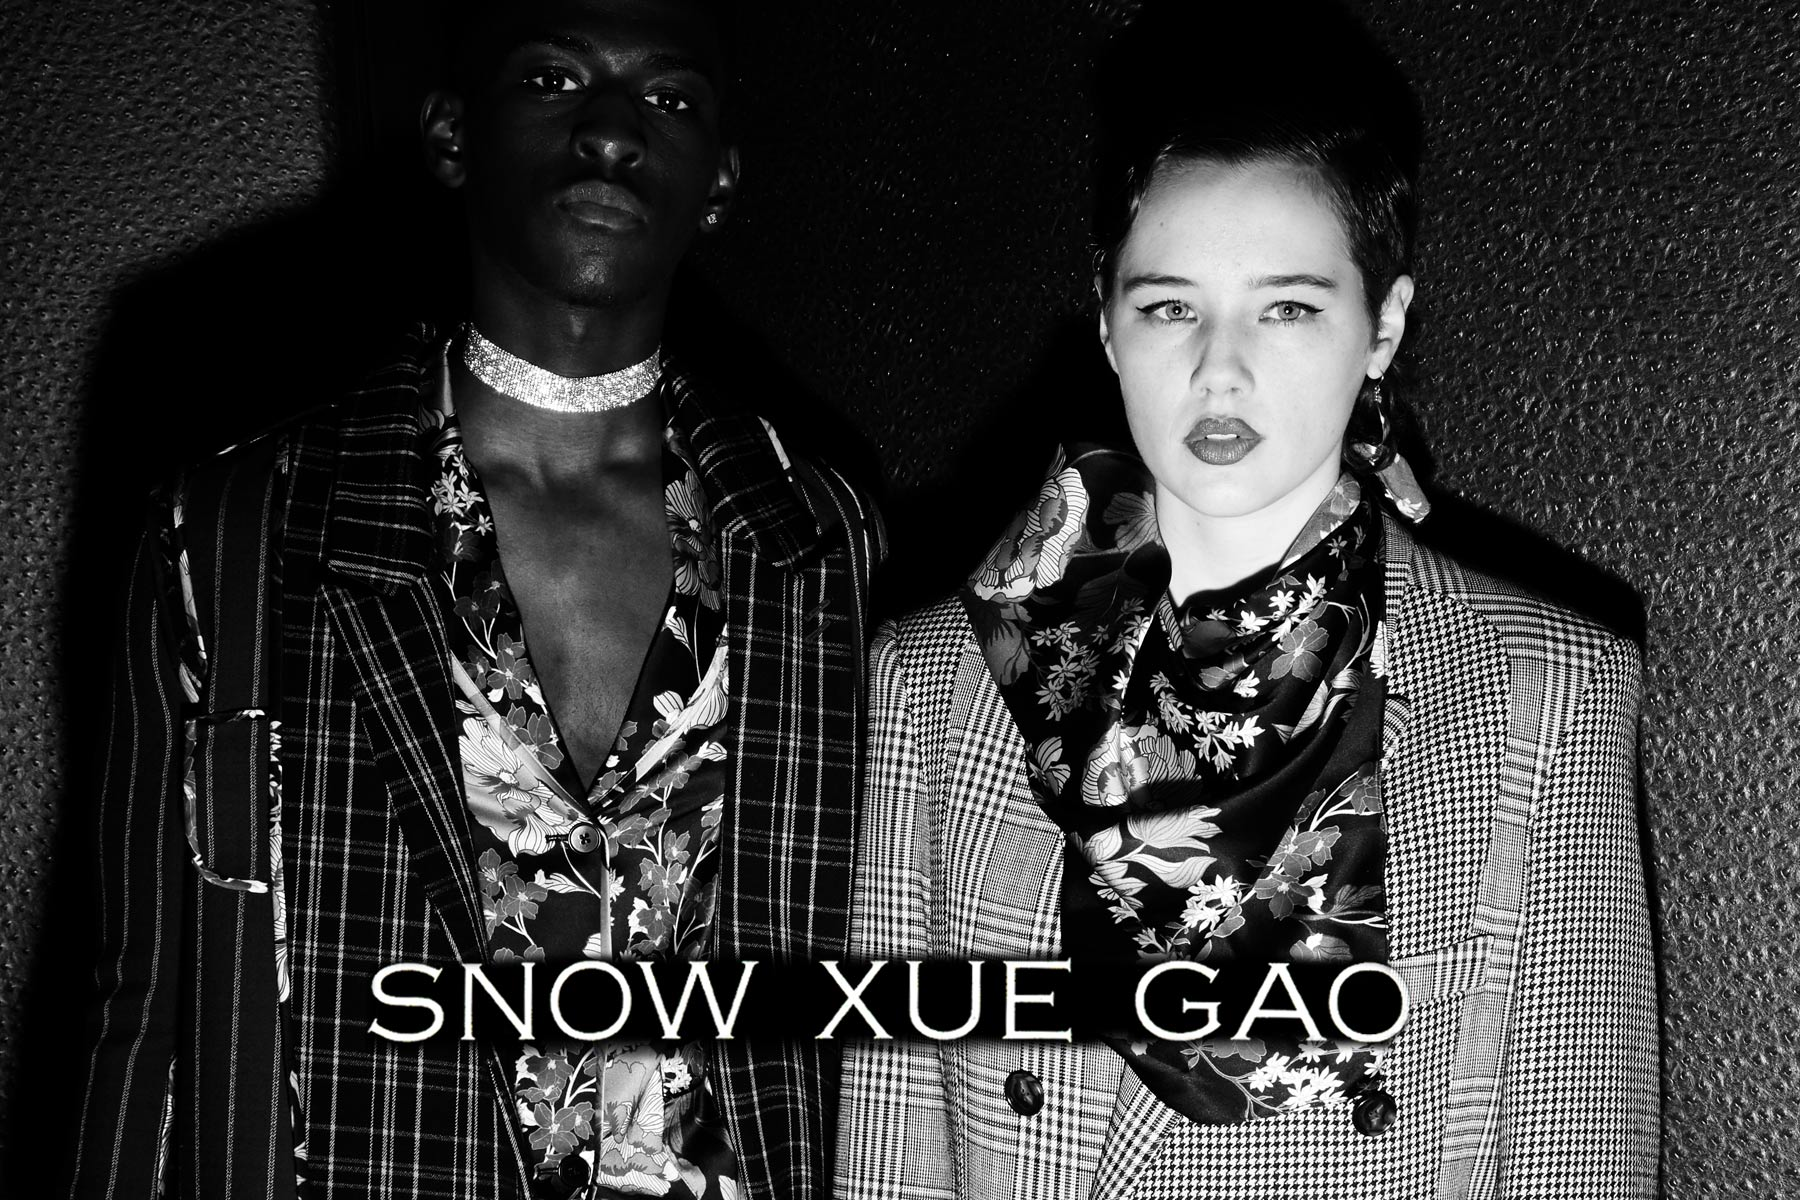 A male and female model pose backstage at Snow Xue Gao Fall/Winter 2018. Photographed by Alexander Thompson for Ponyboy magazine.